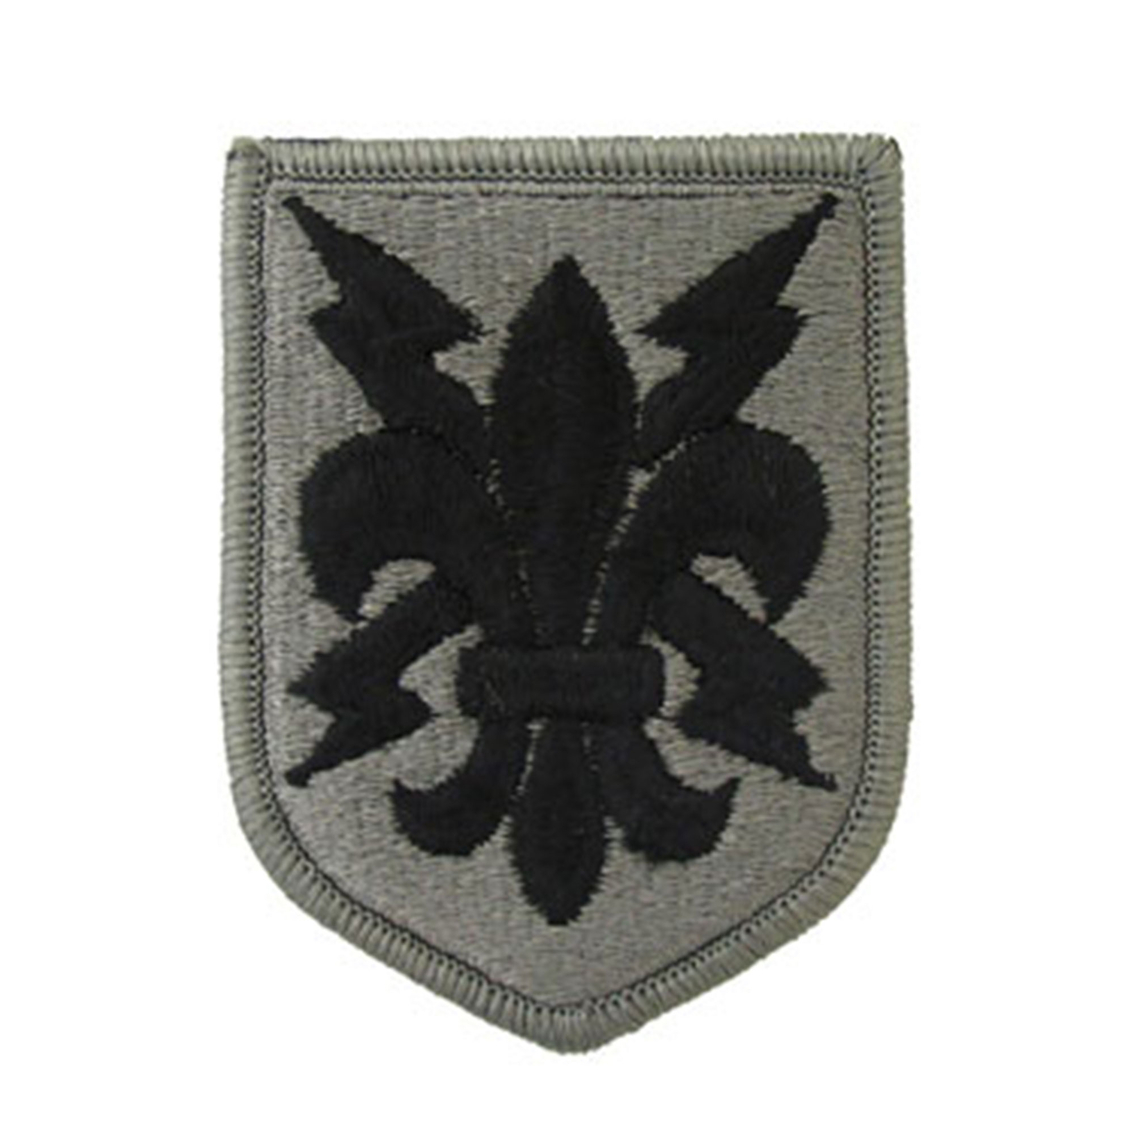 Army Unit Patch 205th Military Intelligence Brigade